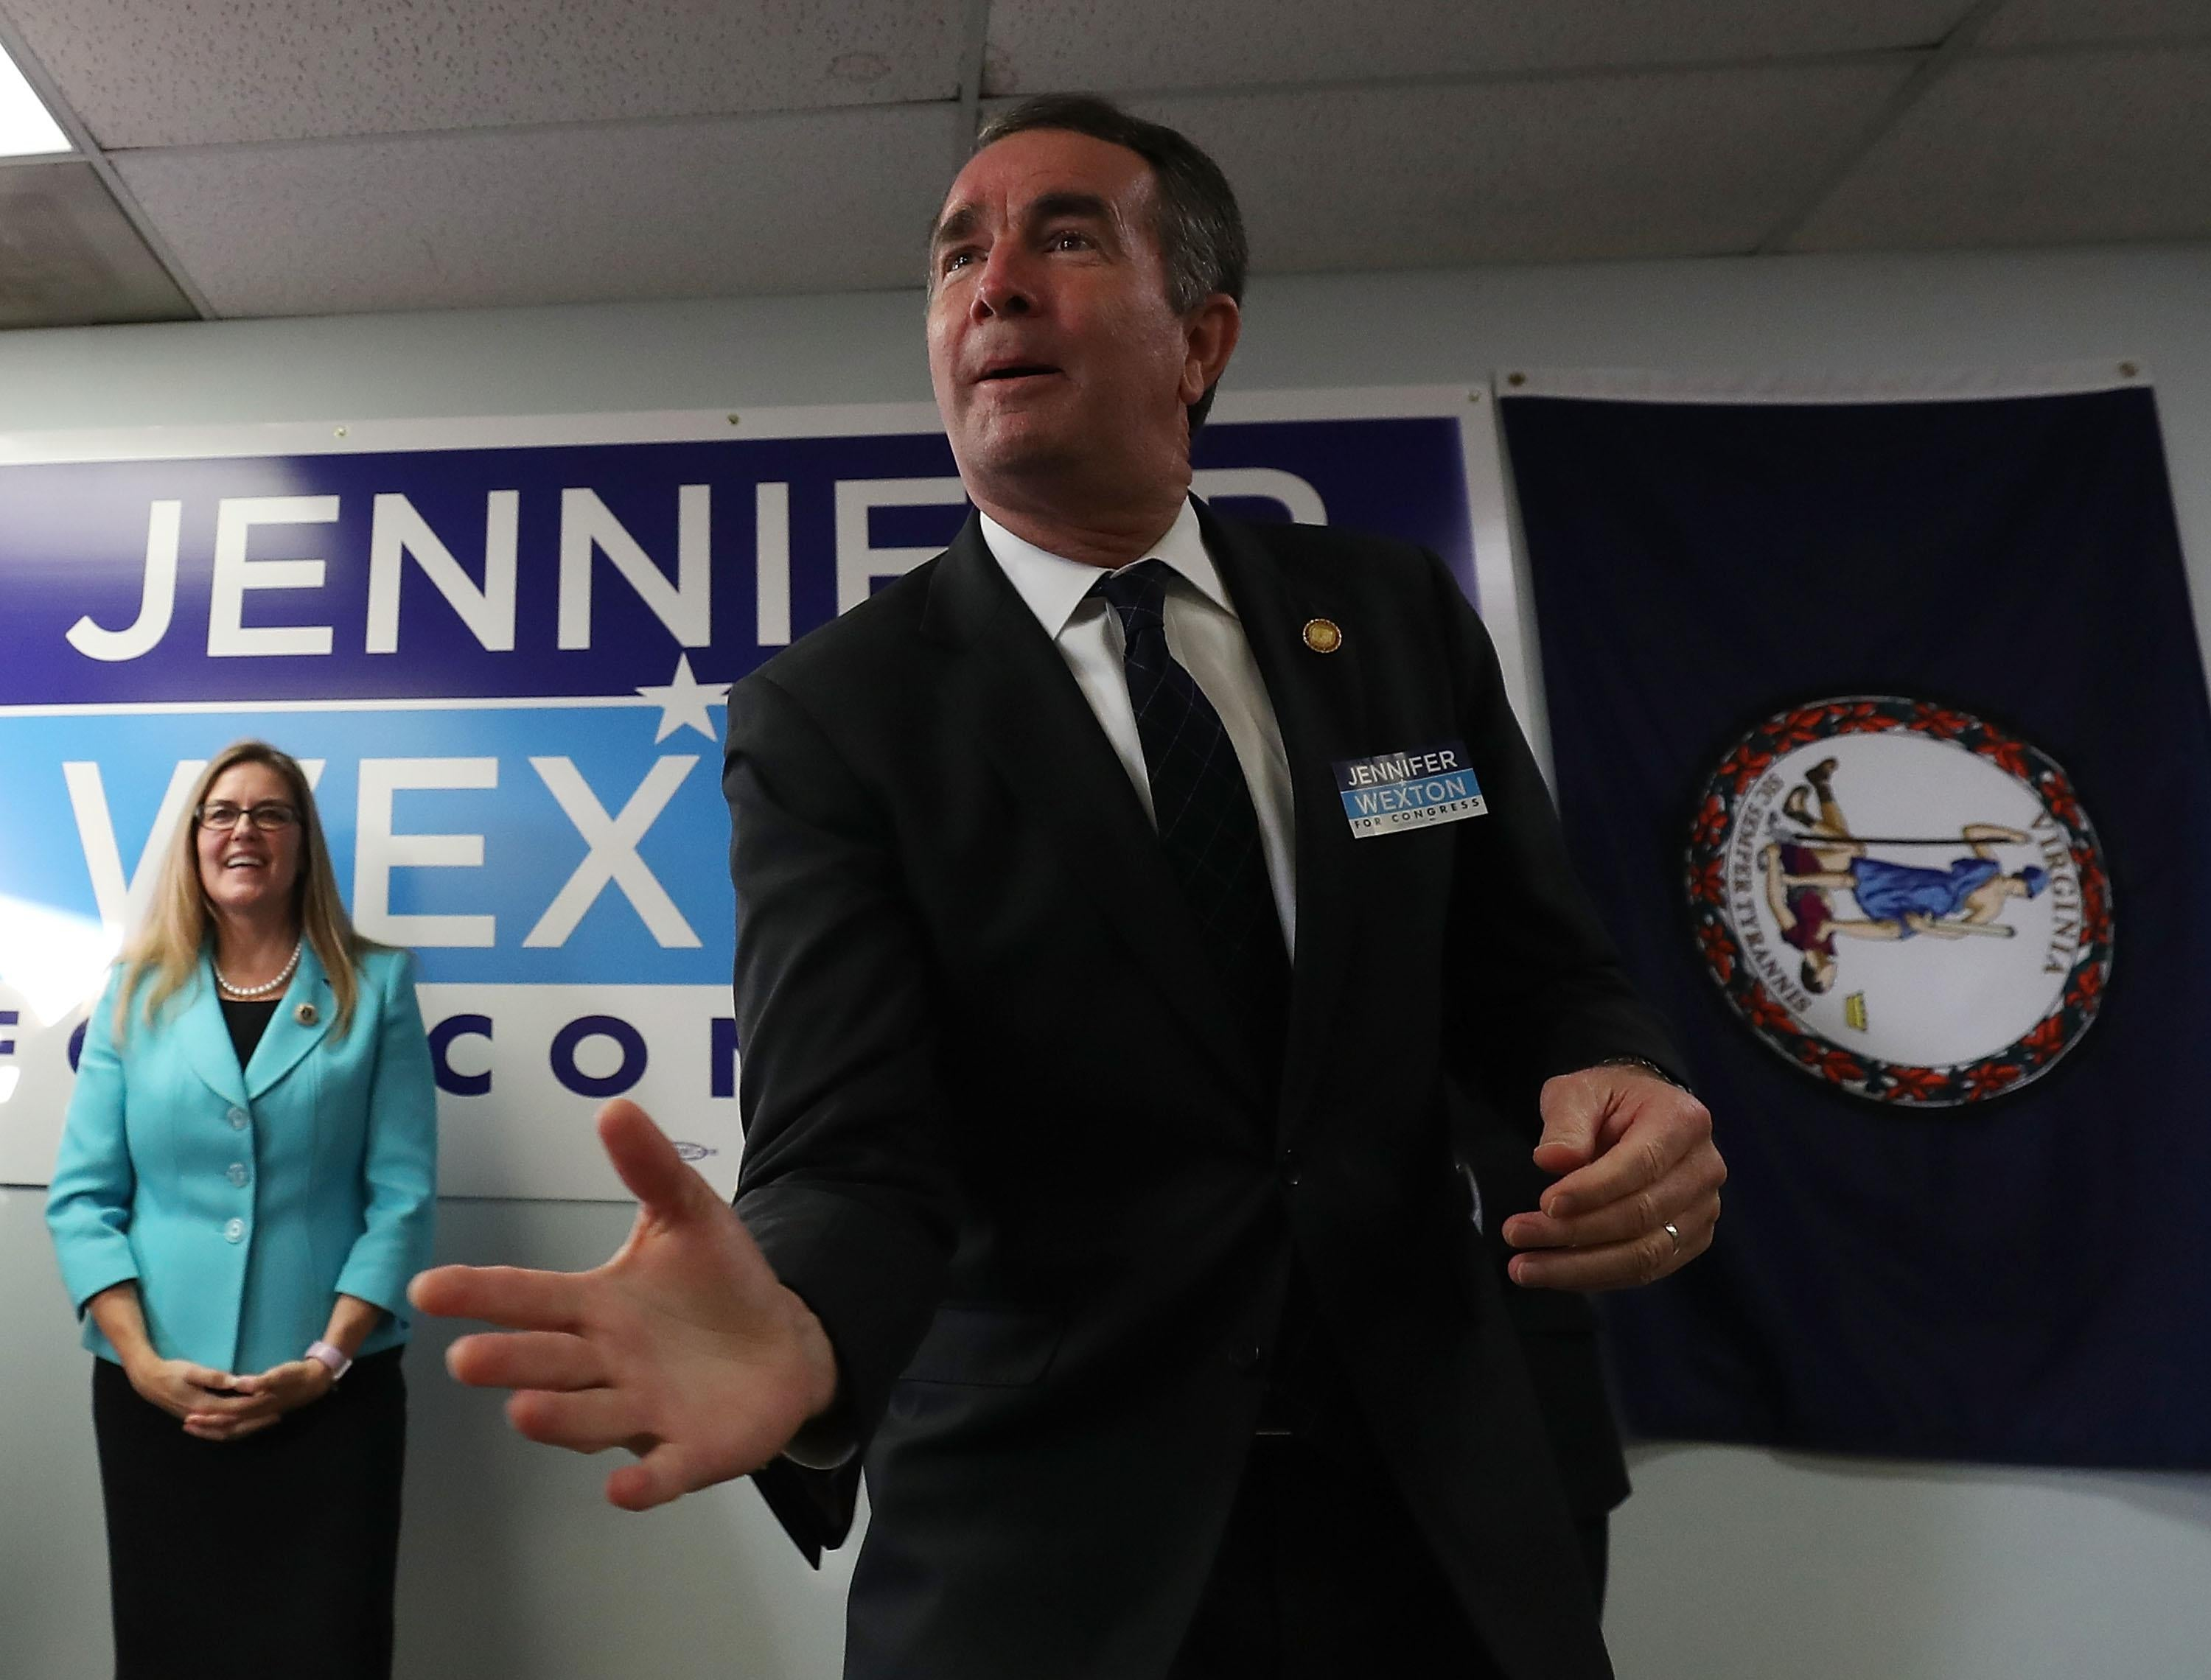 Virginia Gov. Ralph Northam speaks while flanked by Virginia State Senator and candidate for the U.S. House of Representatives Jennifer Wexton during a rally at the Wexton campaign headquarters on October 30, 2018 in Sterling, Virginia.